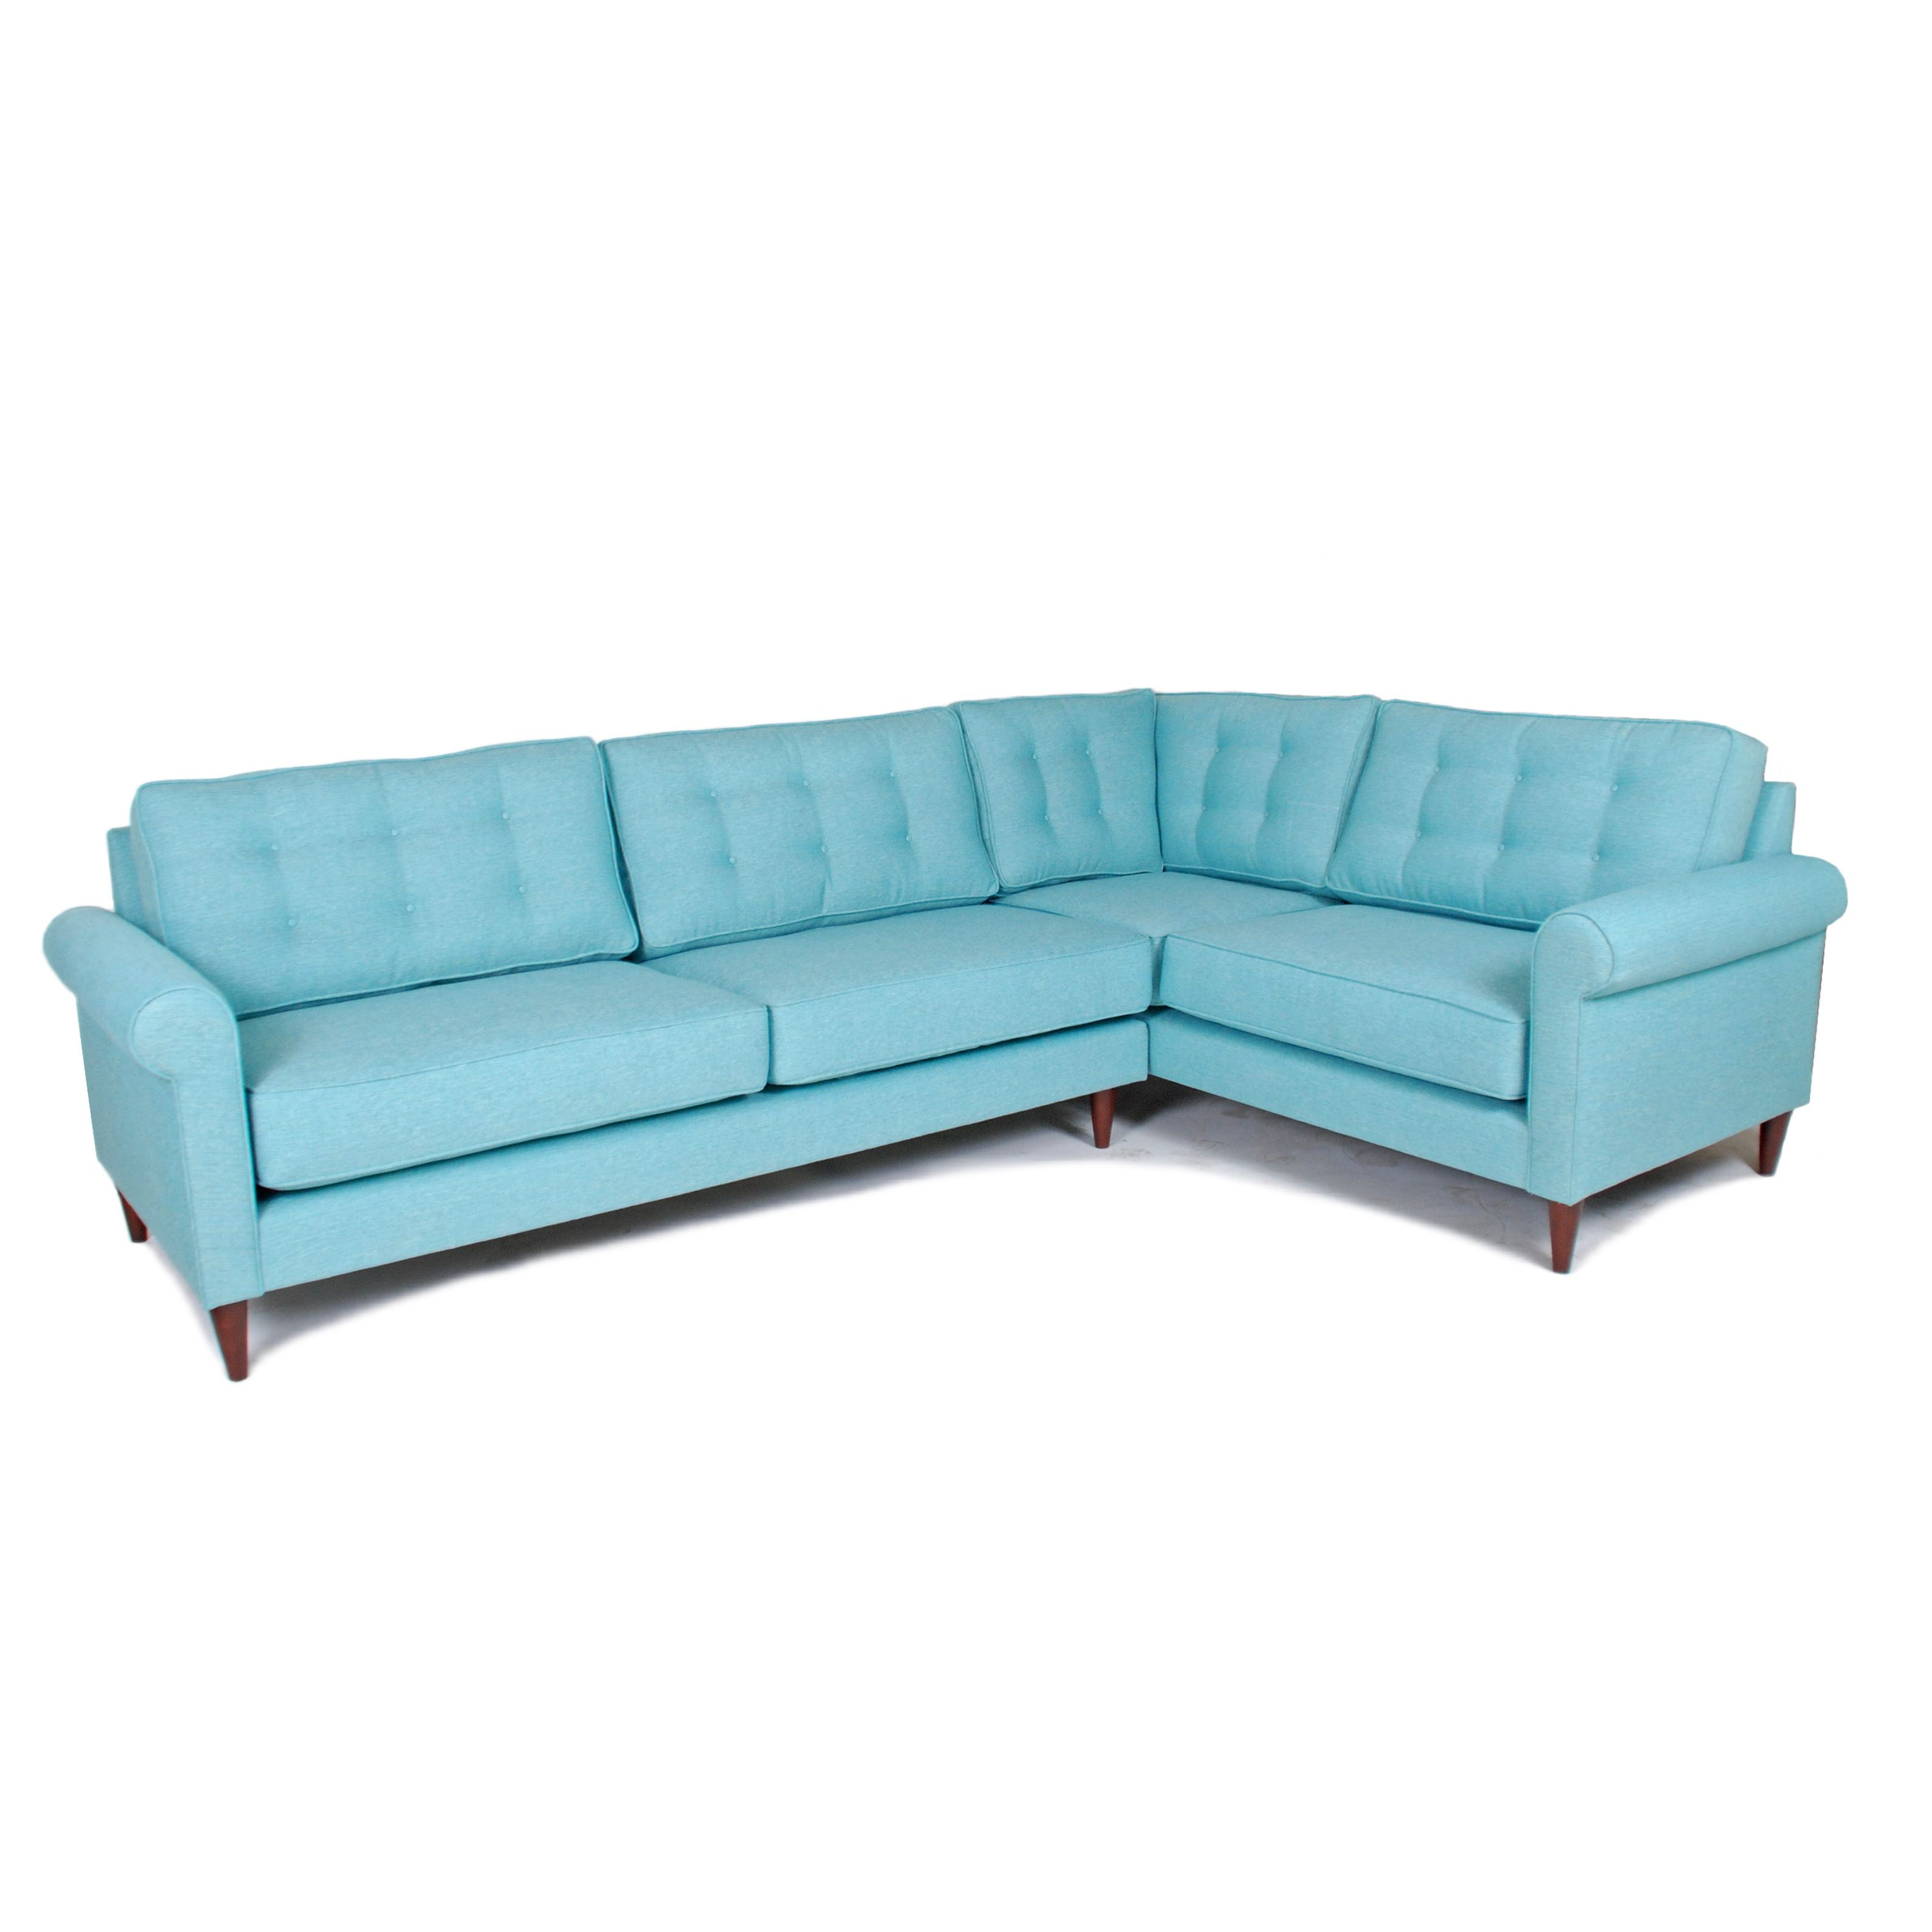 Shopping Online Furniture: Bedding, Furniture, Electronics, Jewelry